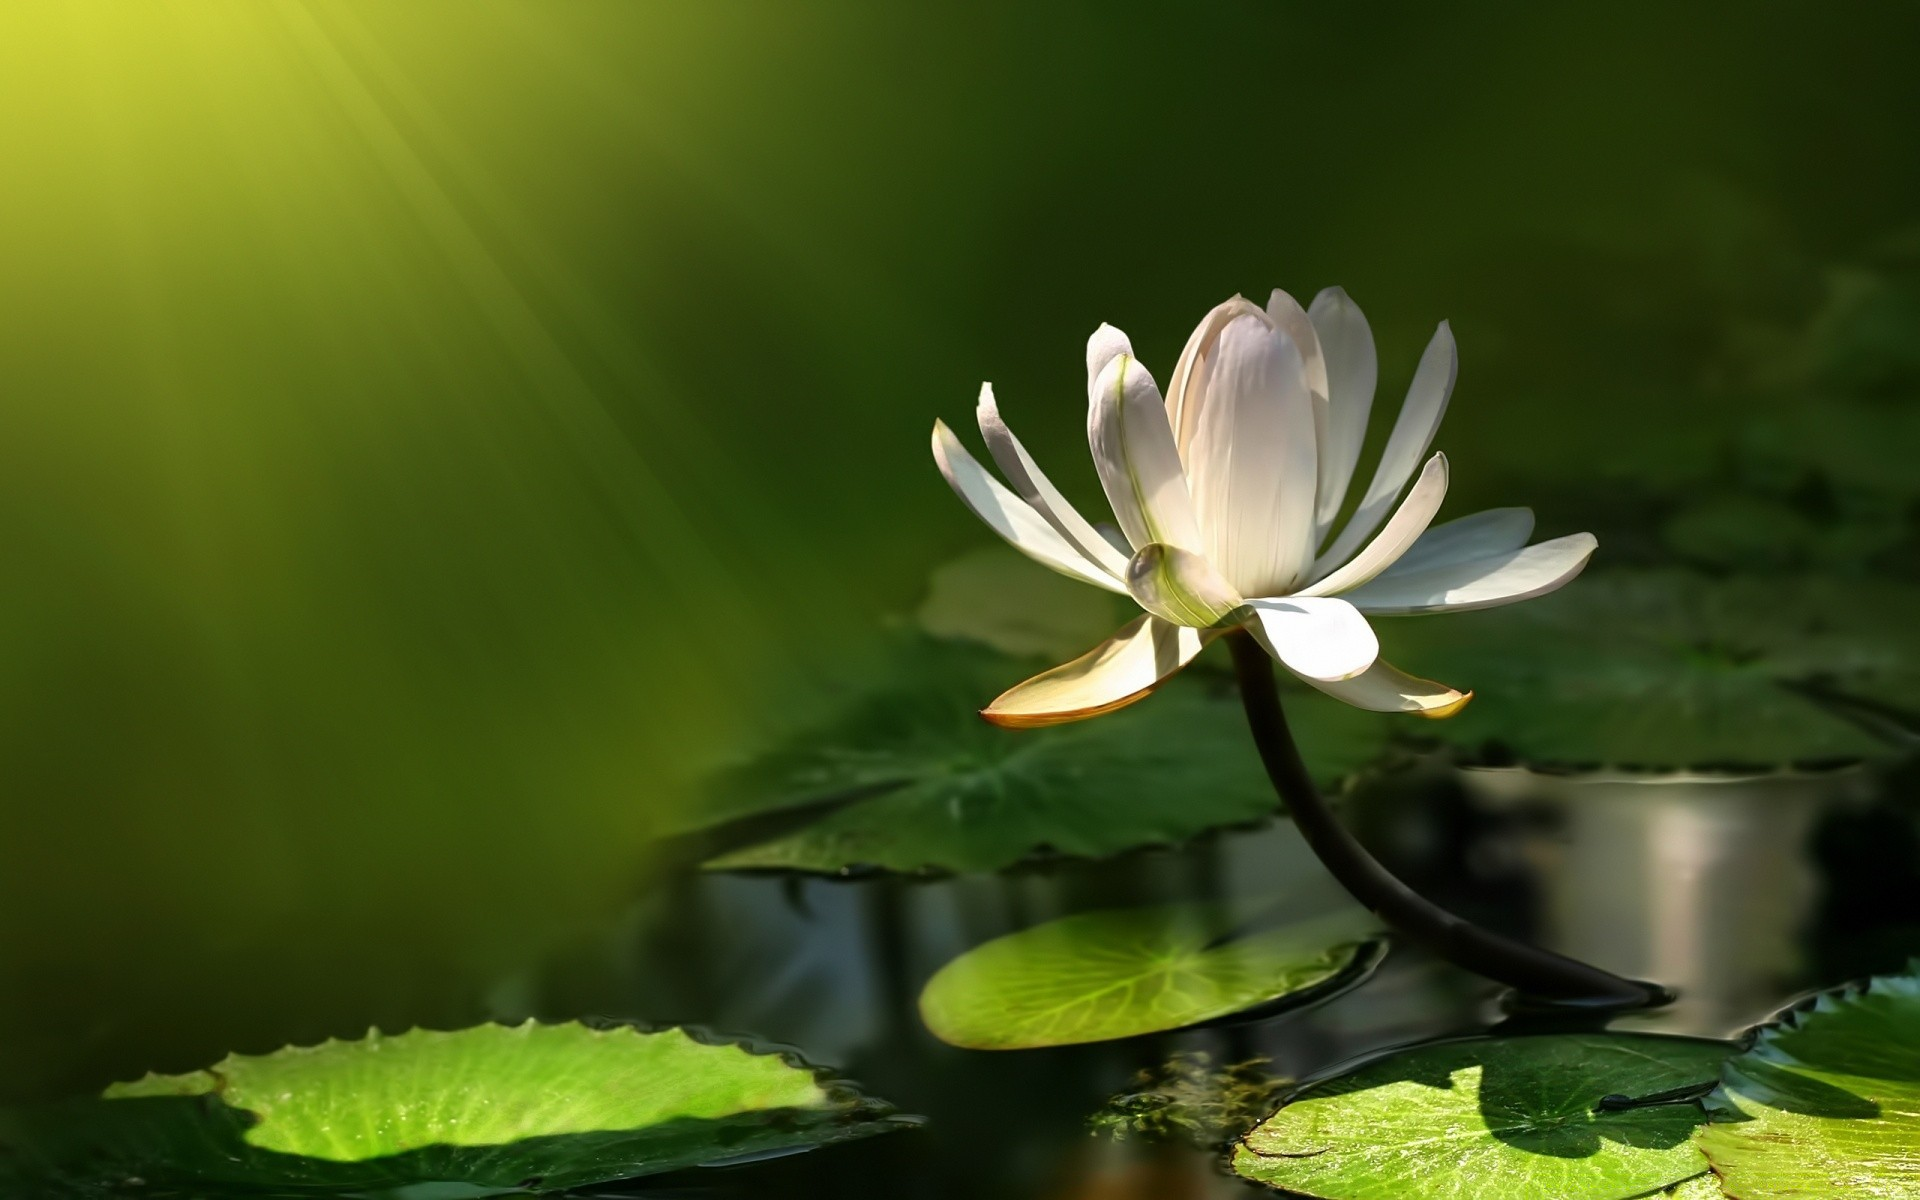 White Lotus Flower Android Wallpapers For Free